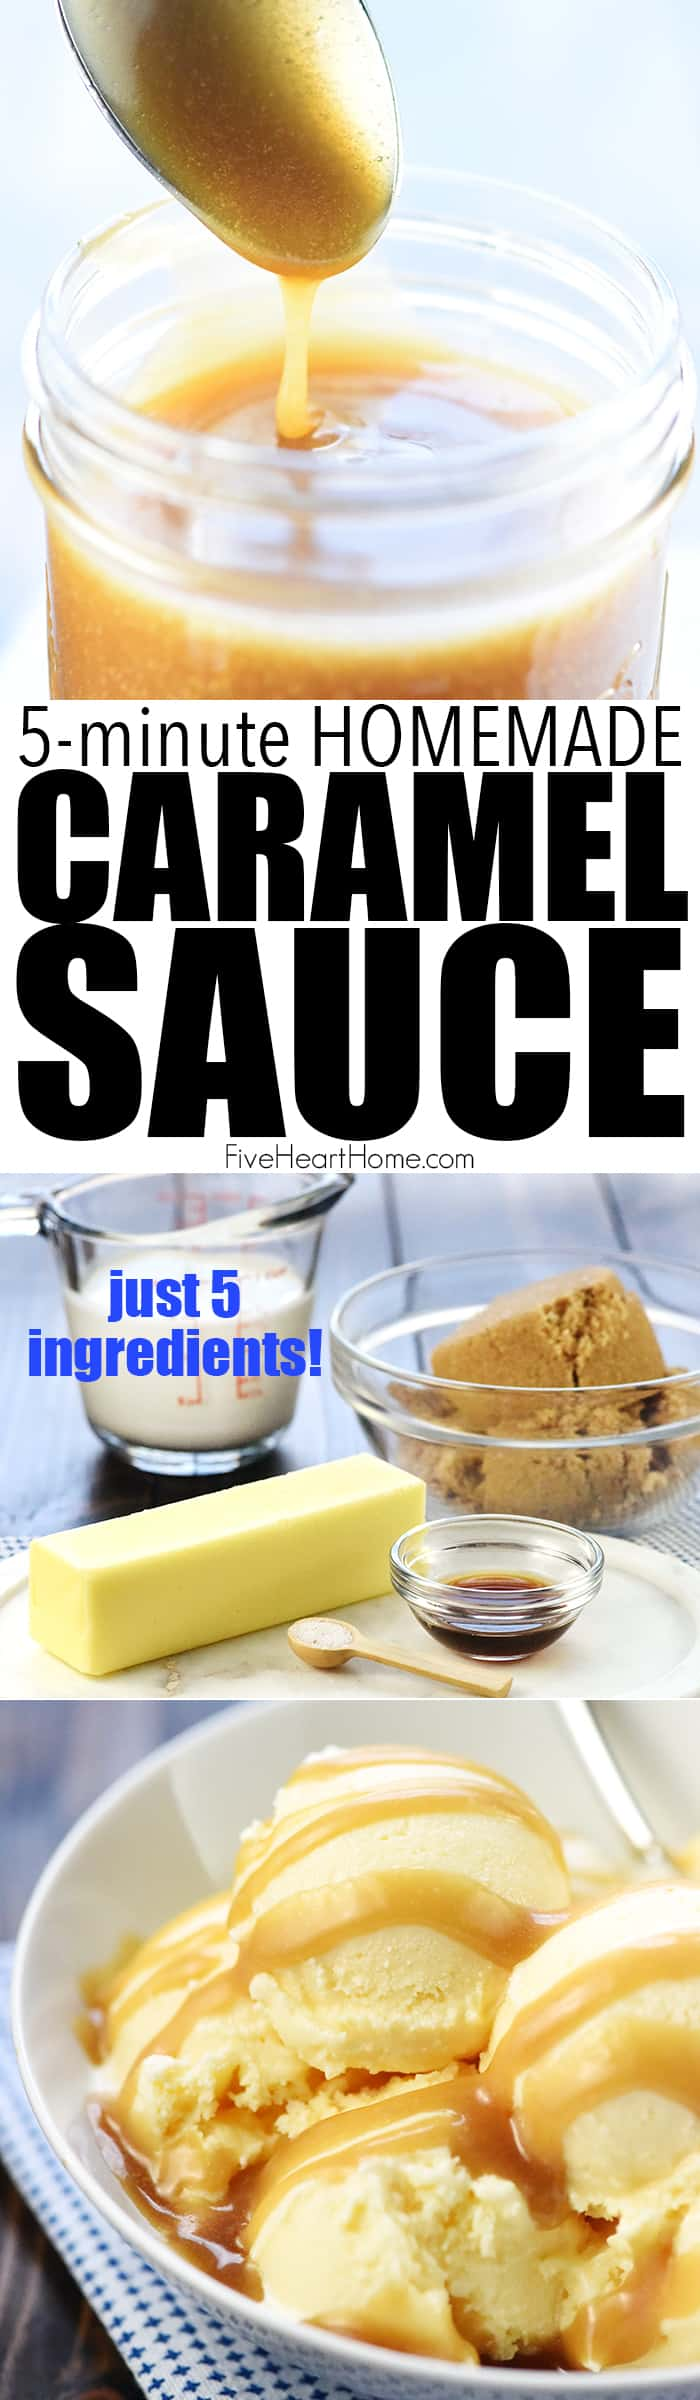 Quick & Easy Homemade Caramel Sauce ~ how to make yummy, thick caramel sauce with just five ingredients in five minutes...a perfect recipe for apples, brownies, ice cream, or as a gift! | FiveHeartHome.com